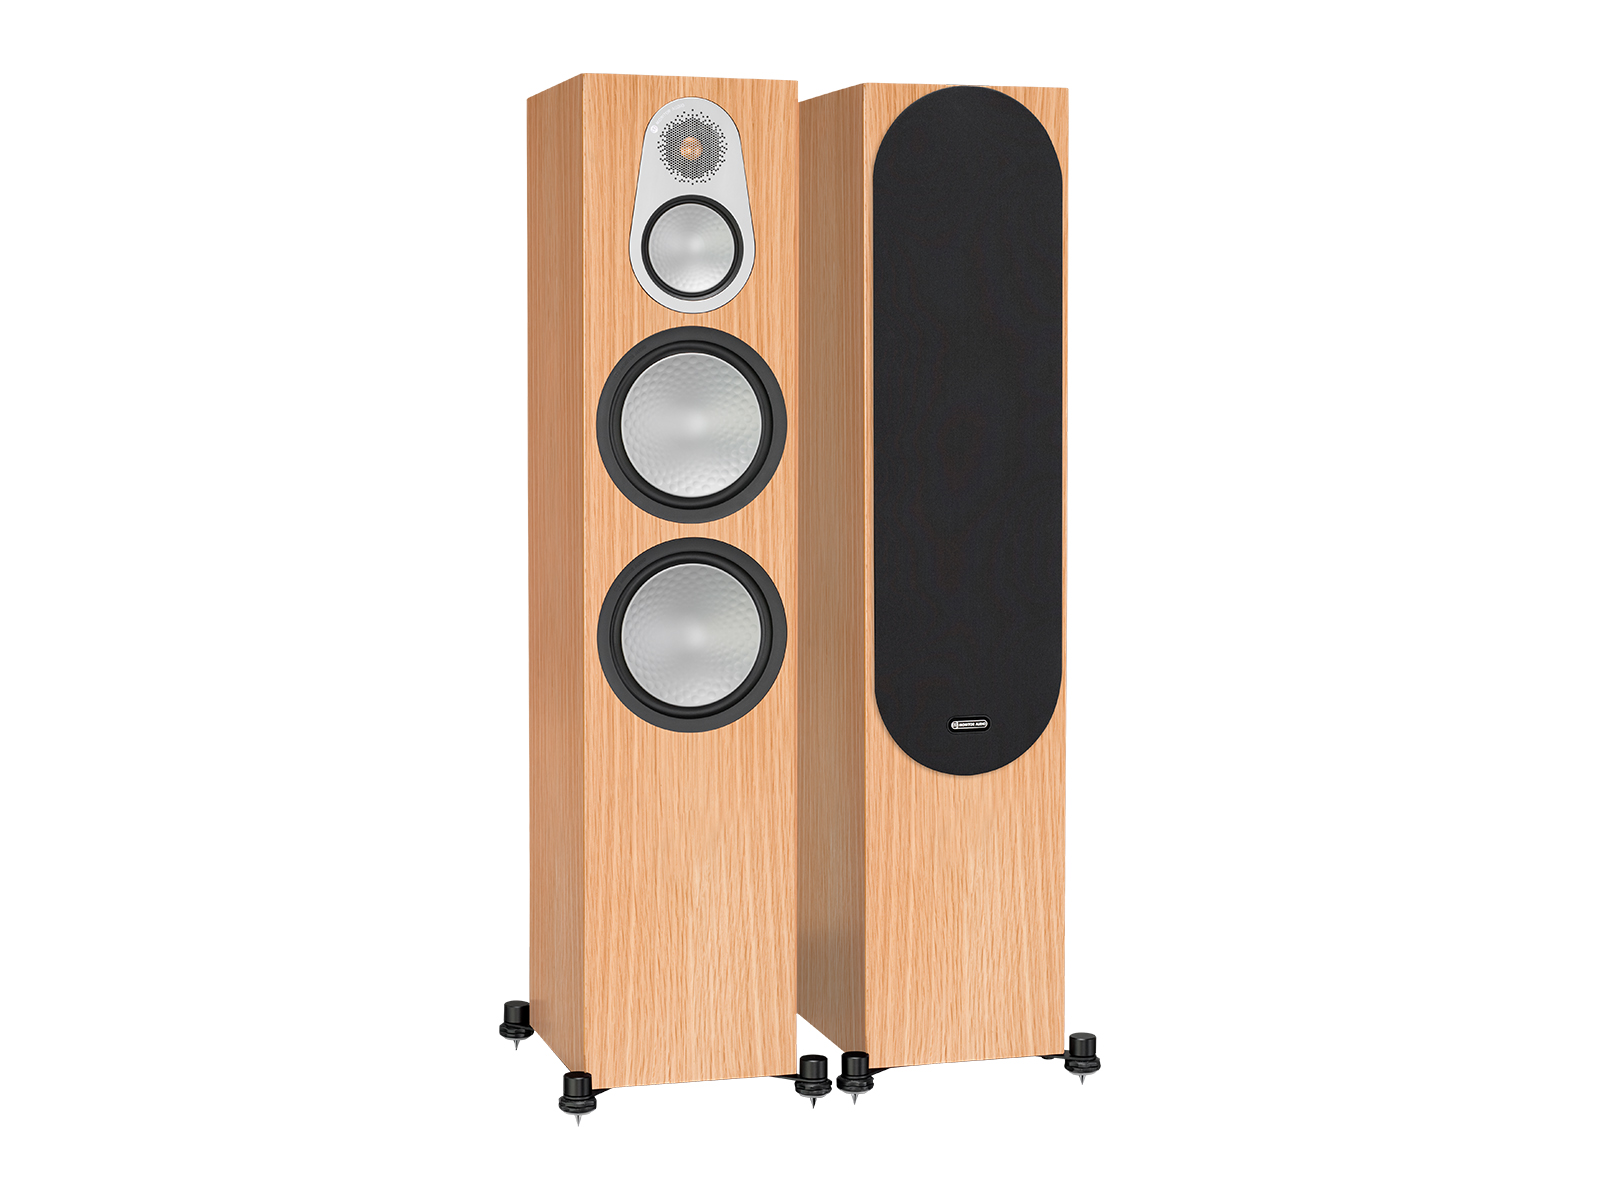 Silver 500, floorstanding speakers, with and without grille in a natural oak finish.